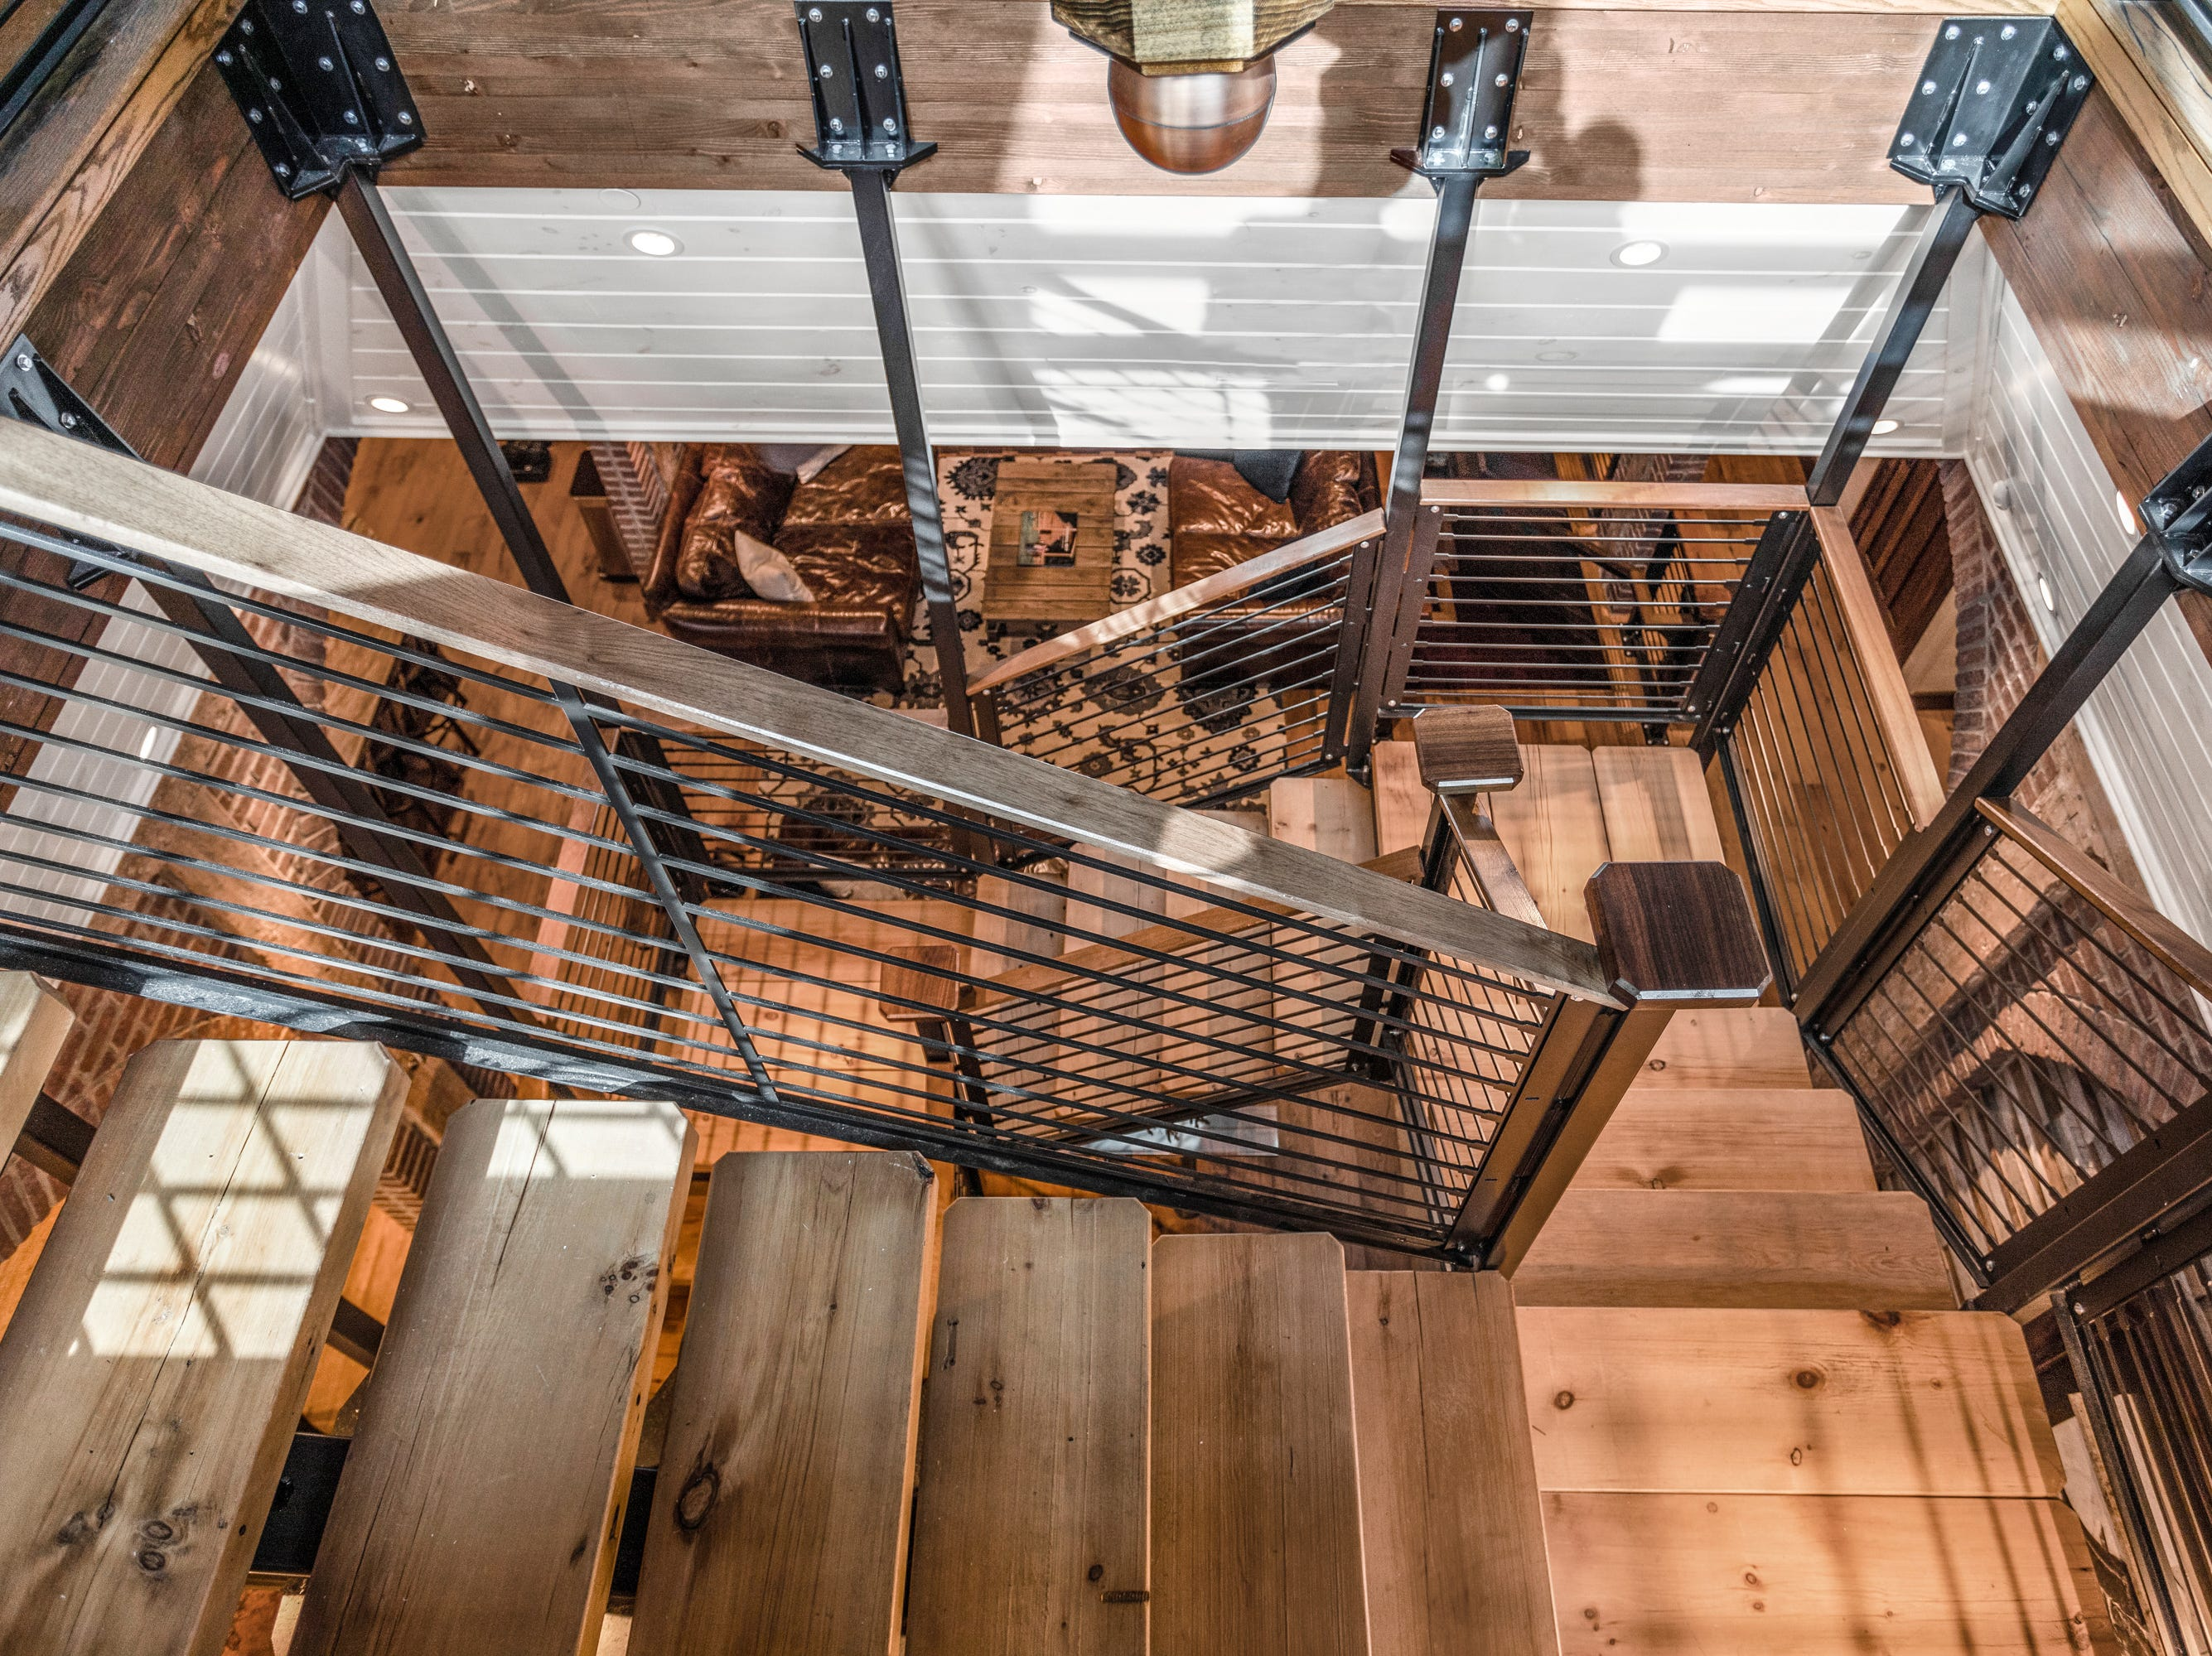 The current owners created this staircase between the two residential floors.